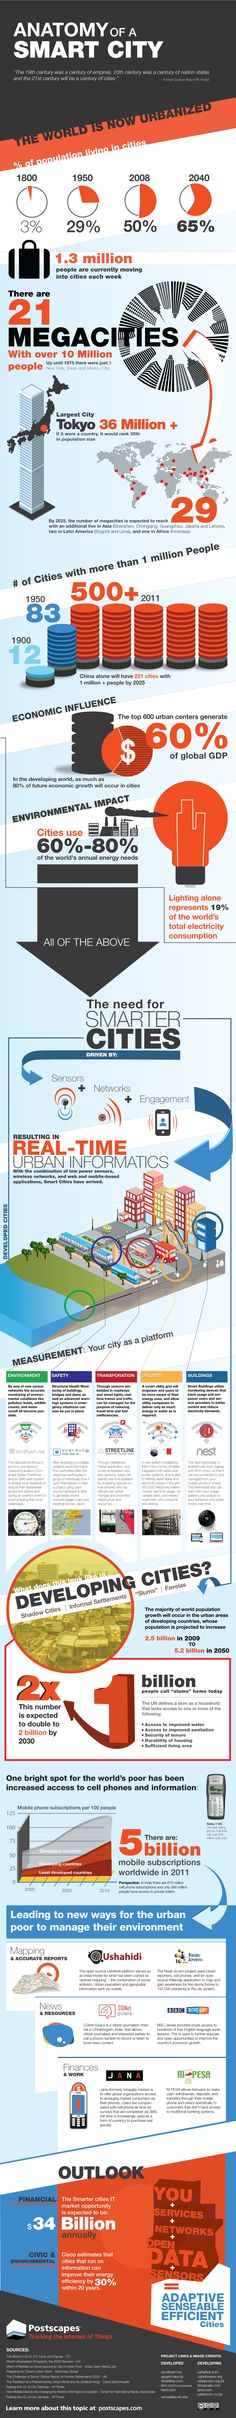 Smart City Infographic | The Dramatic Stats Behind the Rise of Global Networked Cities